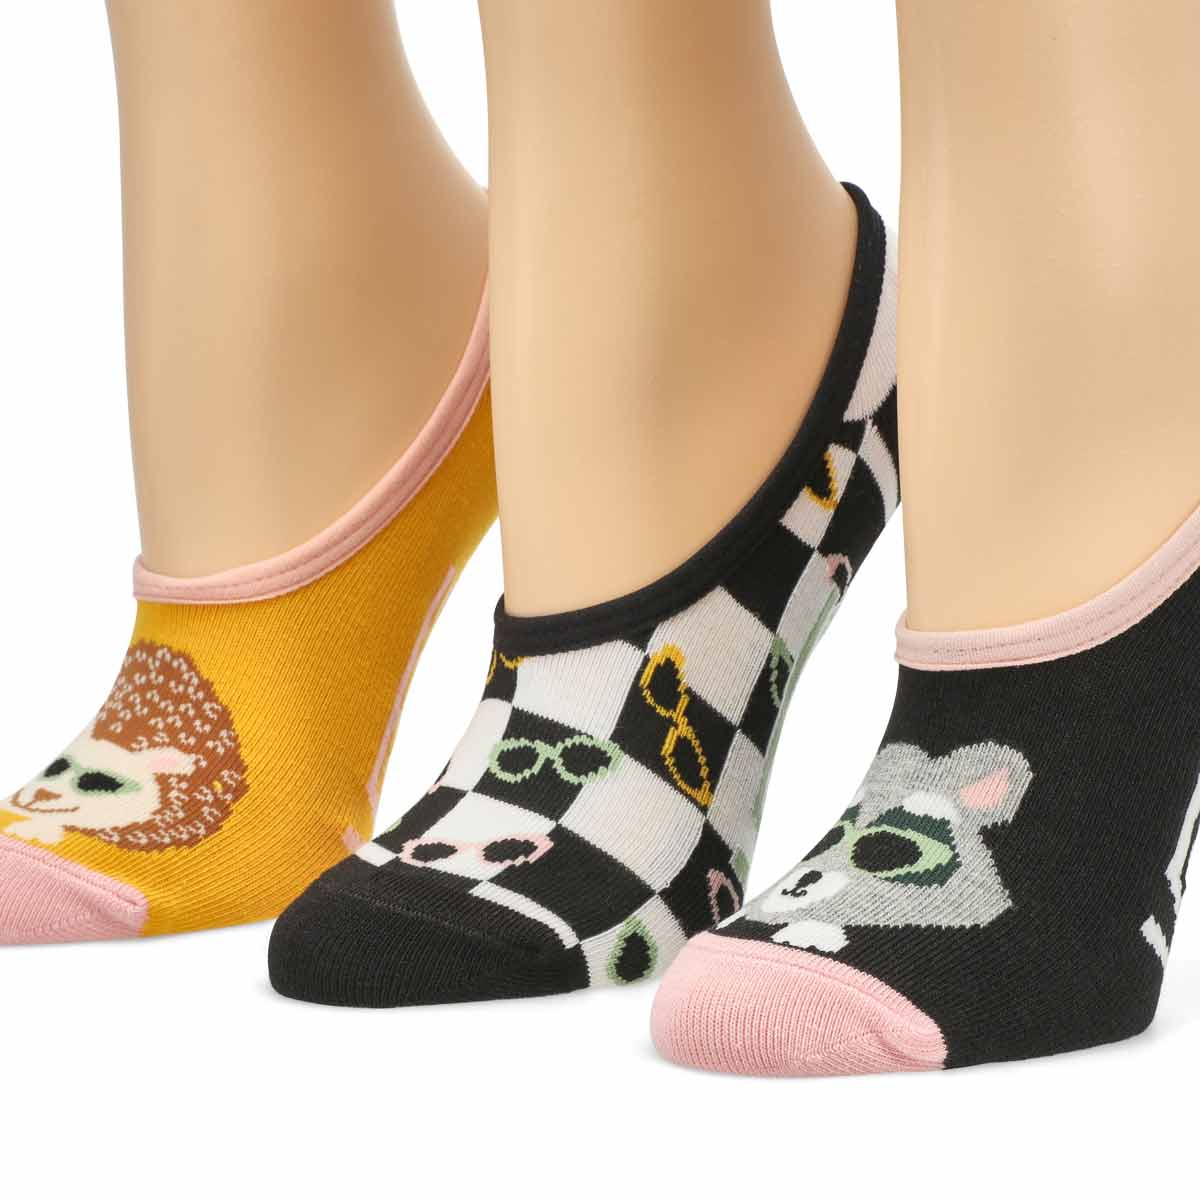 Women's Paw Pal Canoodle Ankle Sock - 3 pack